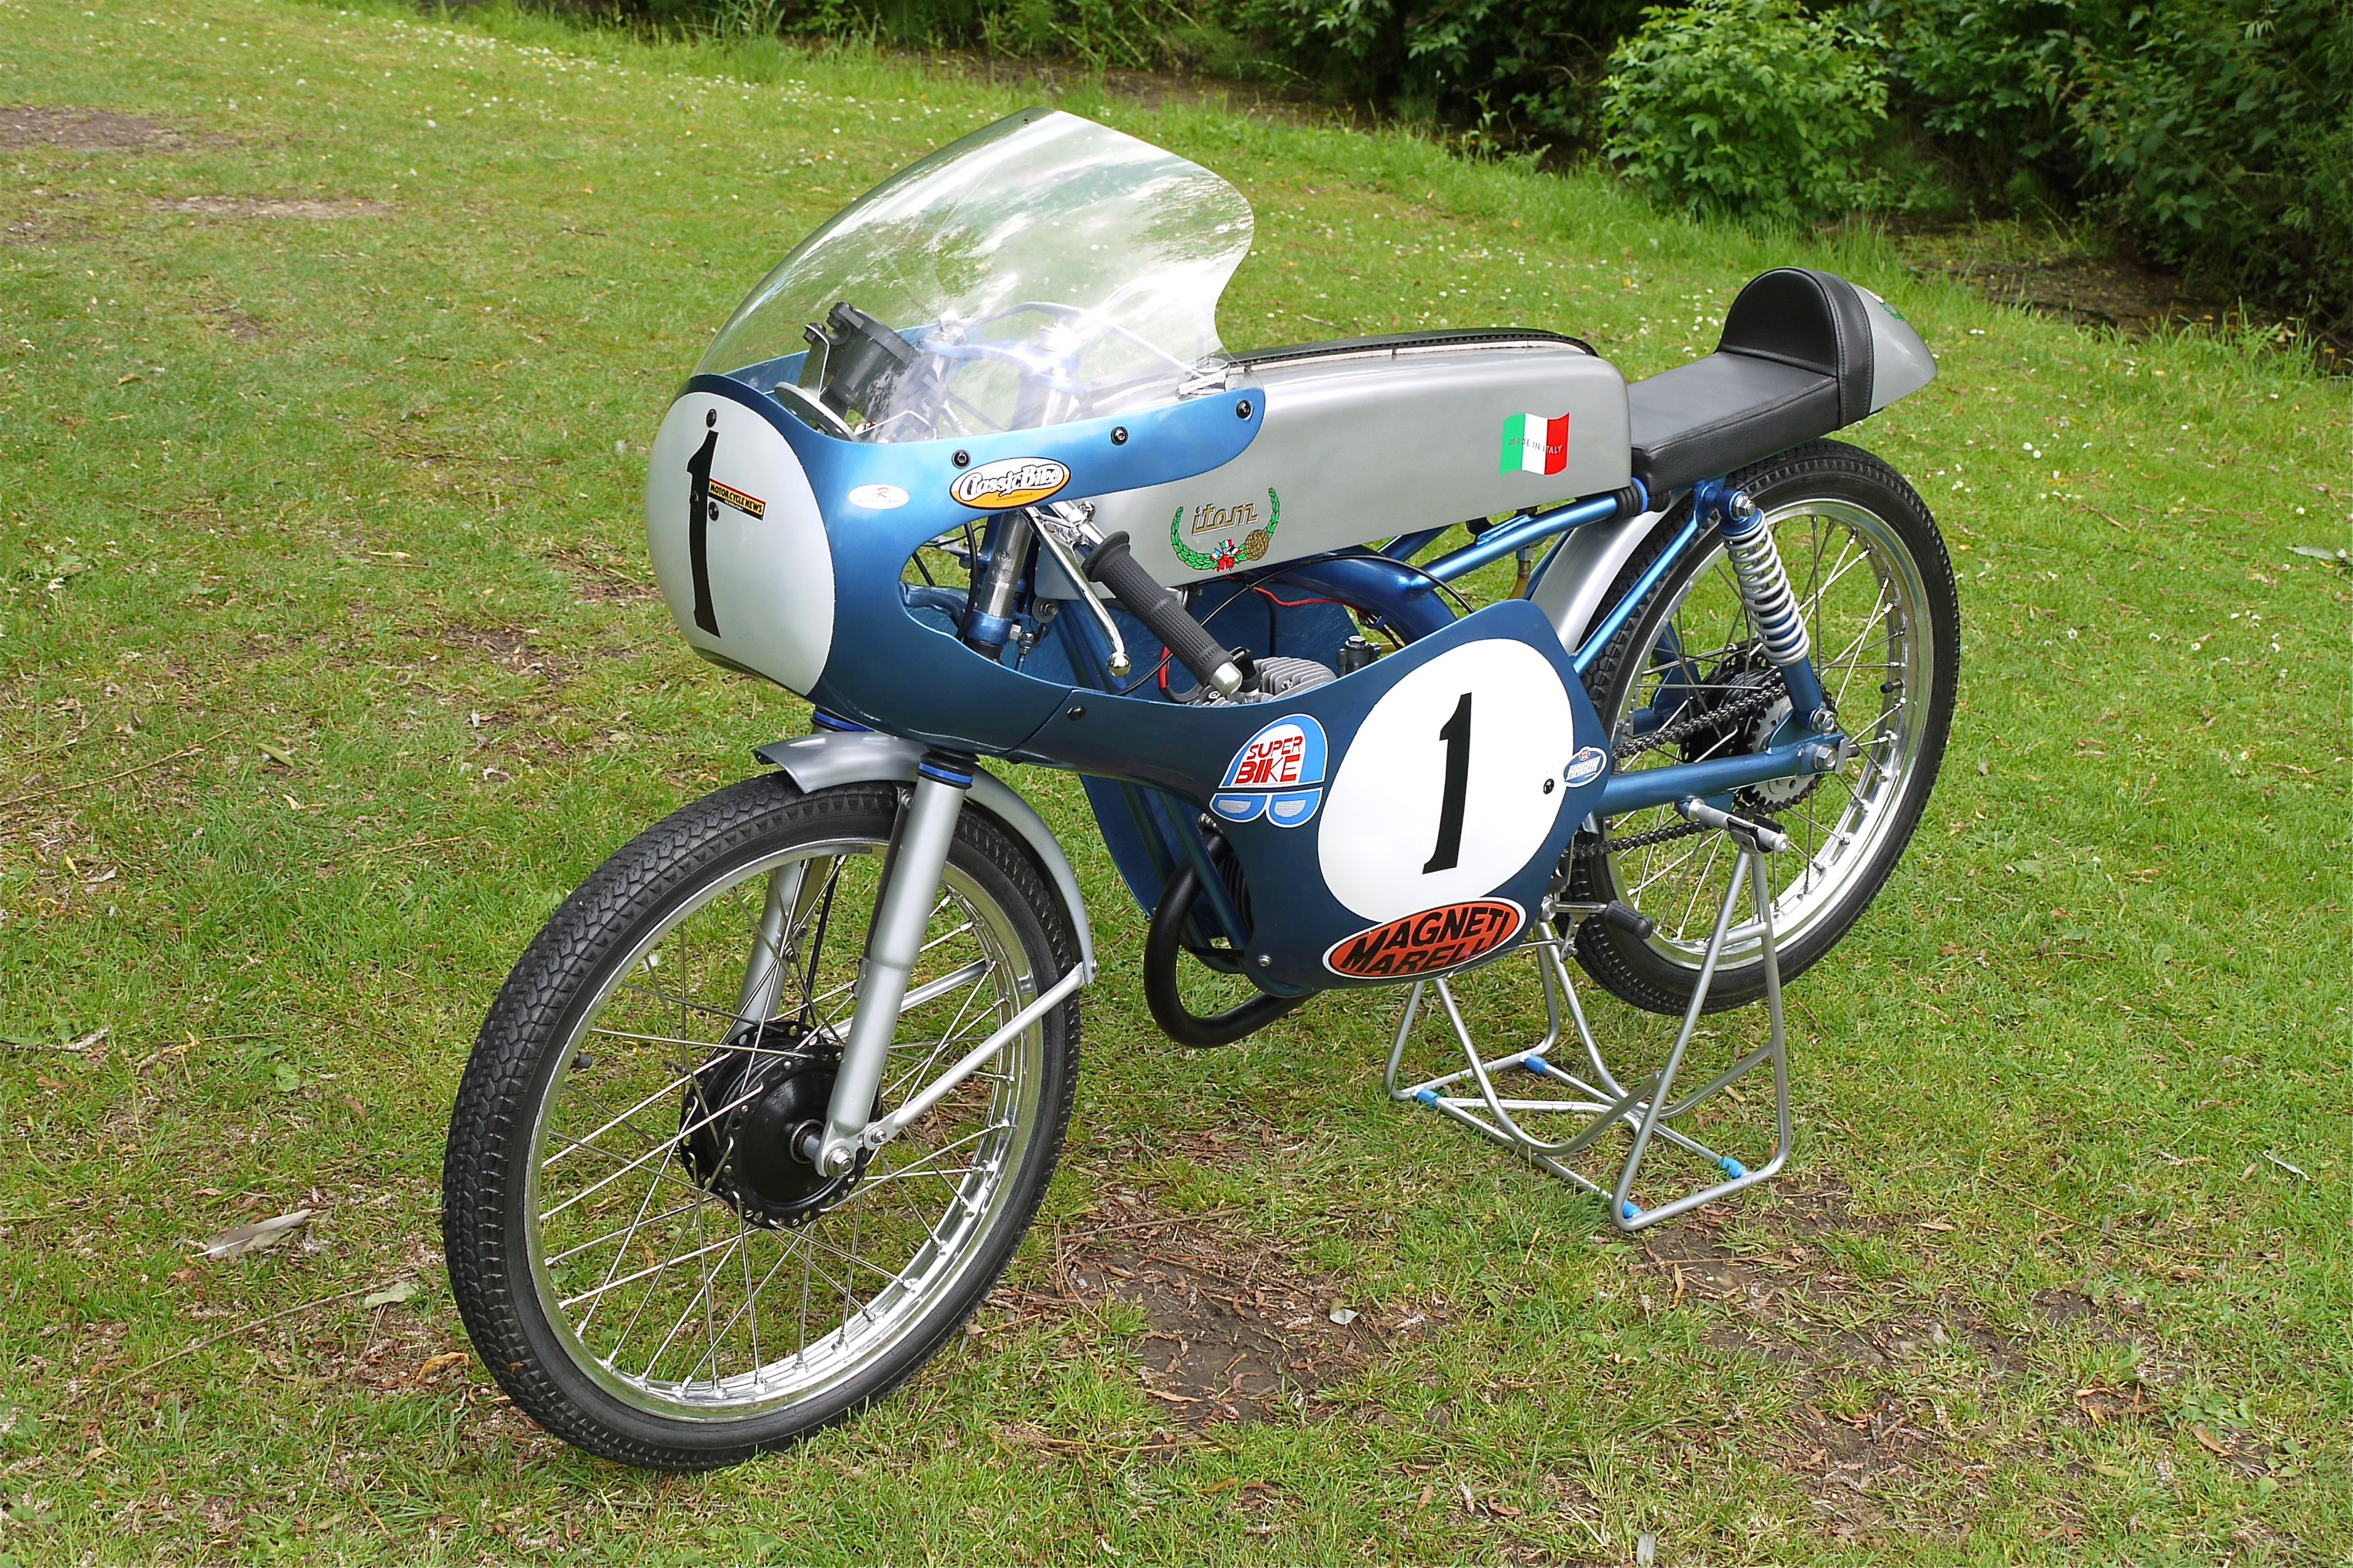 Description itom 50cc racing motorcycle